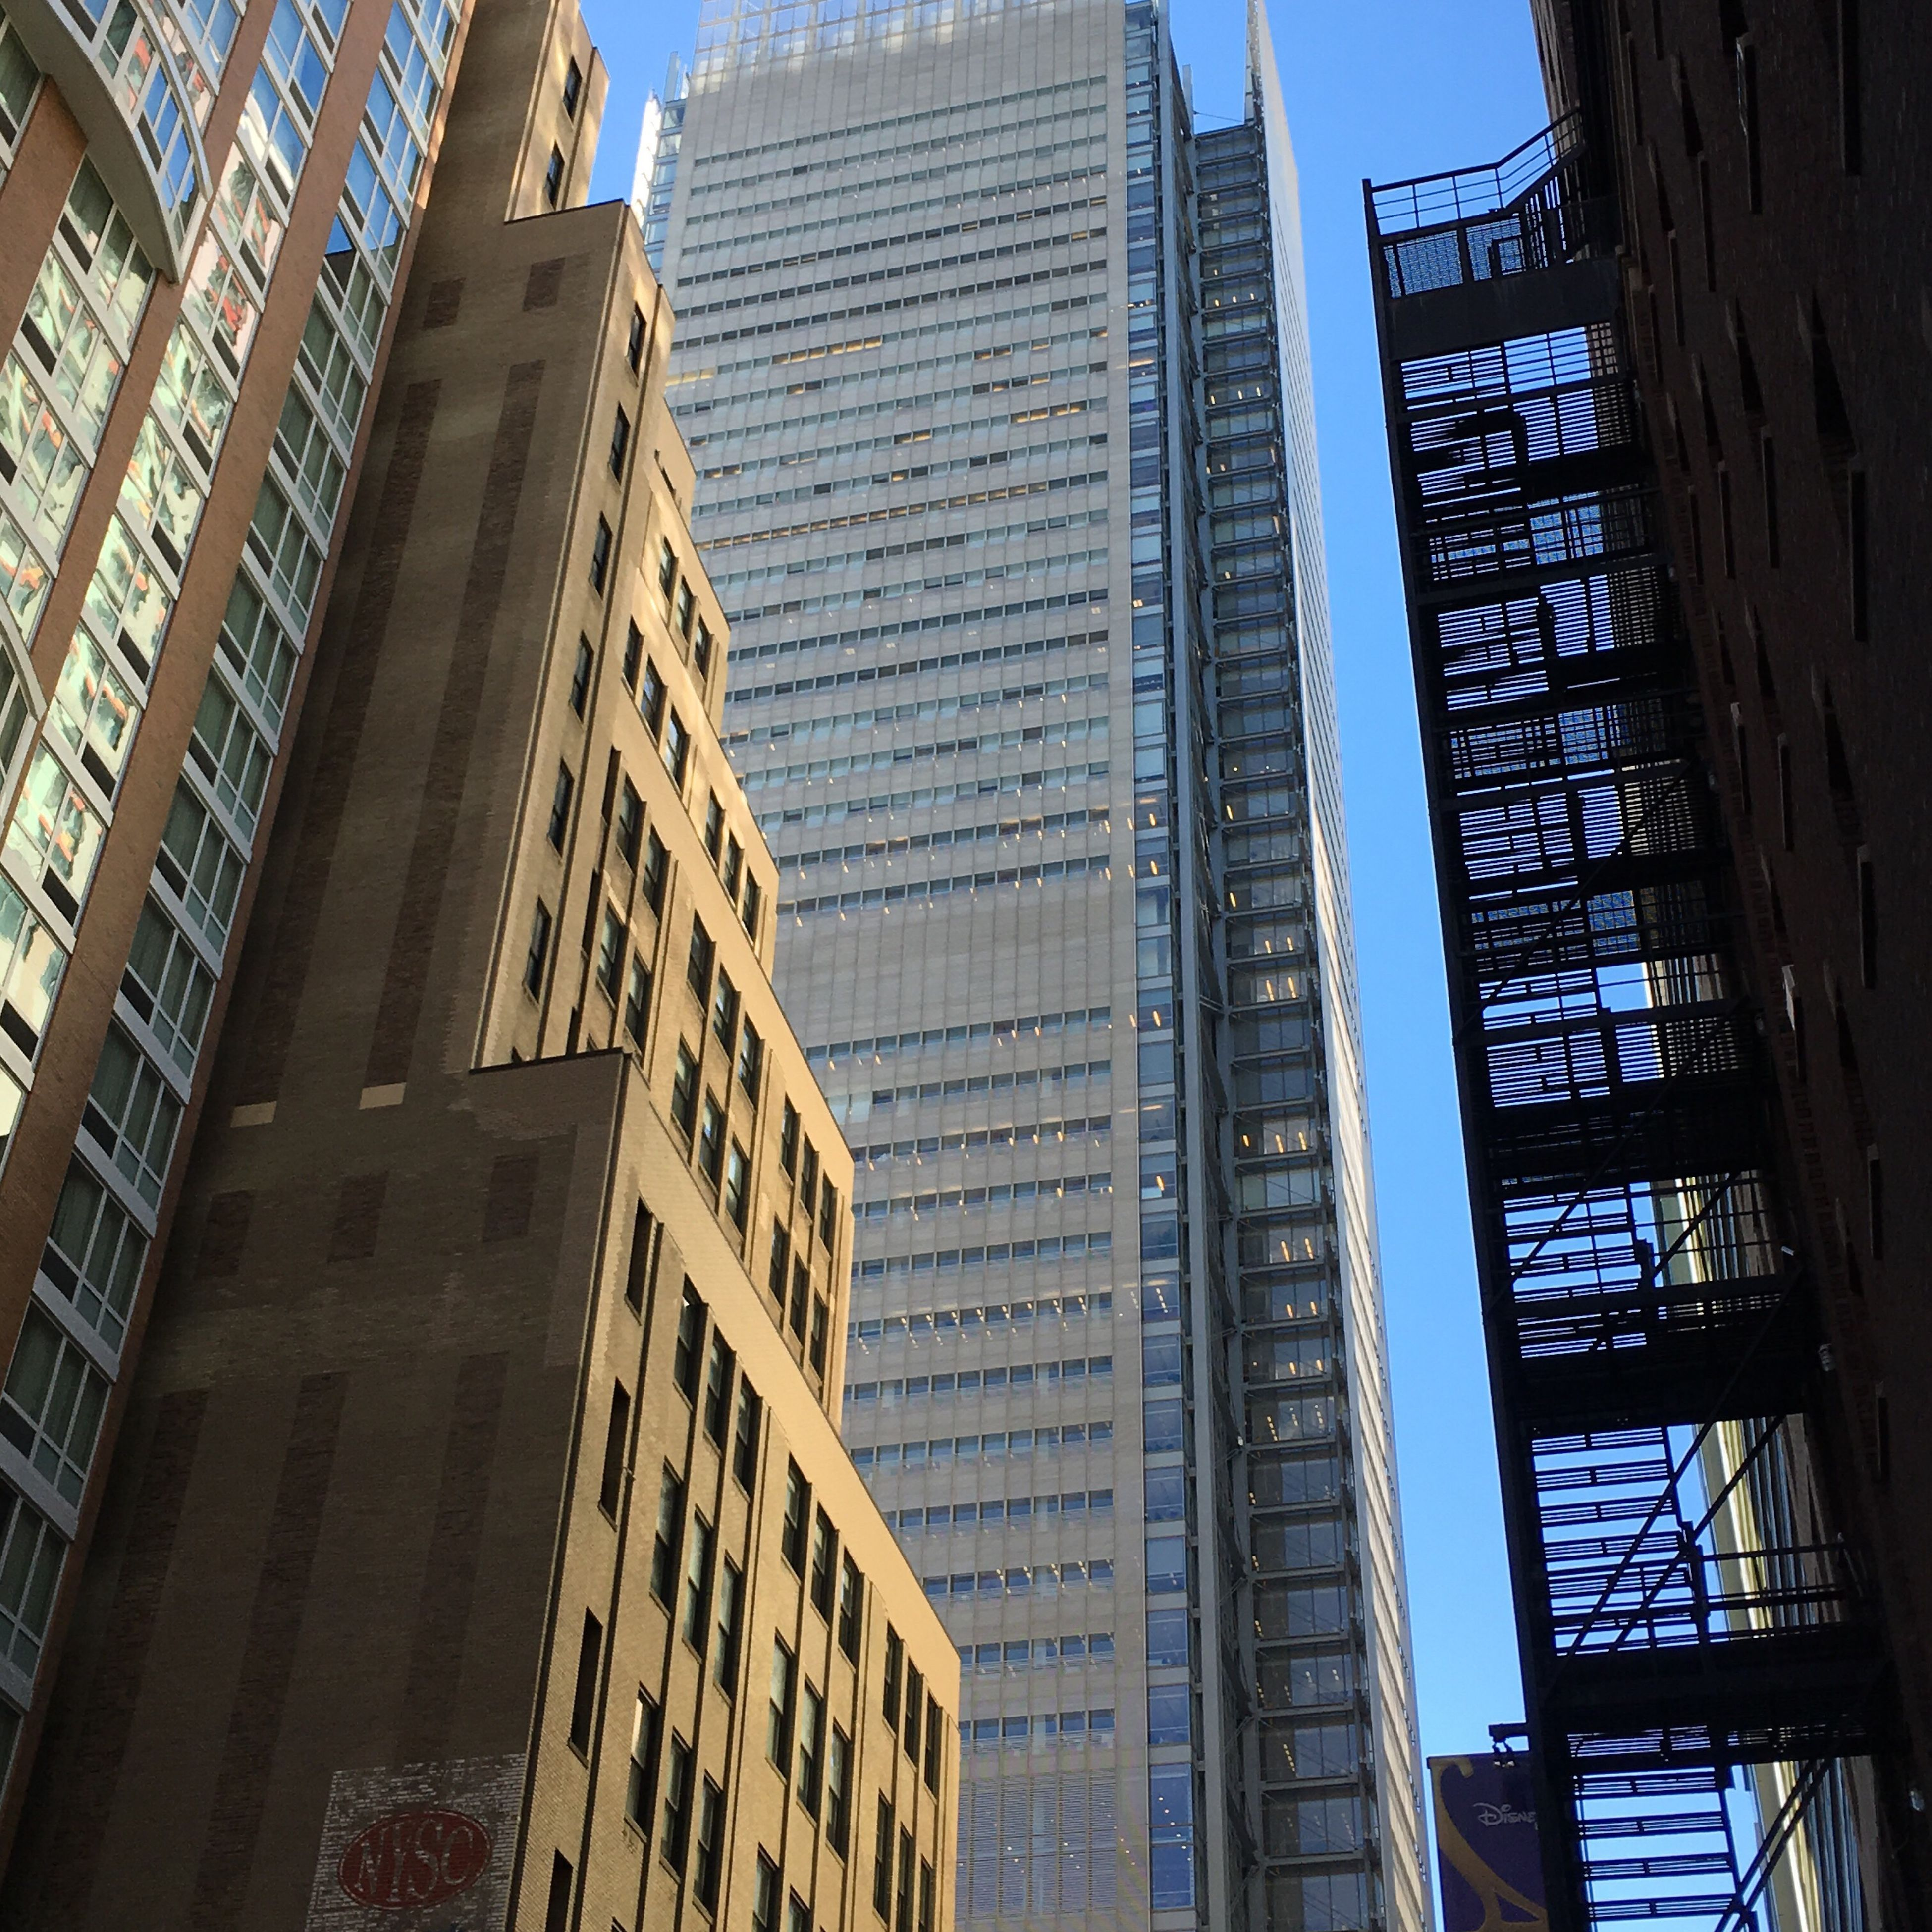 architecture, built structure, building exterior, low angle view, city, skyscraper, modern, tower, tall - high, office building, building, capital cities, glass - material, city life, travel destinations, window, sky, day, no people, famous place